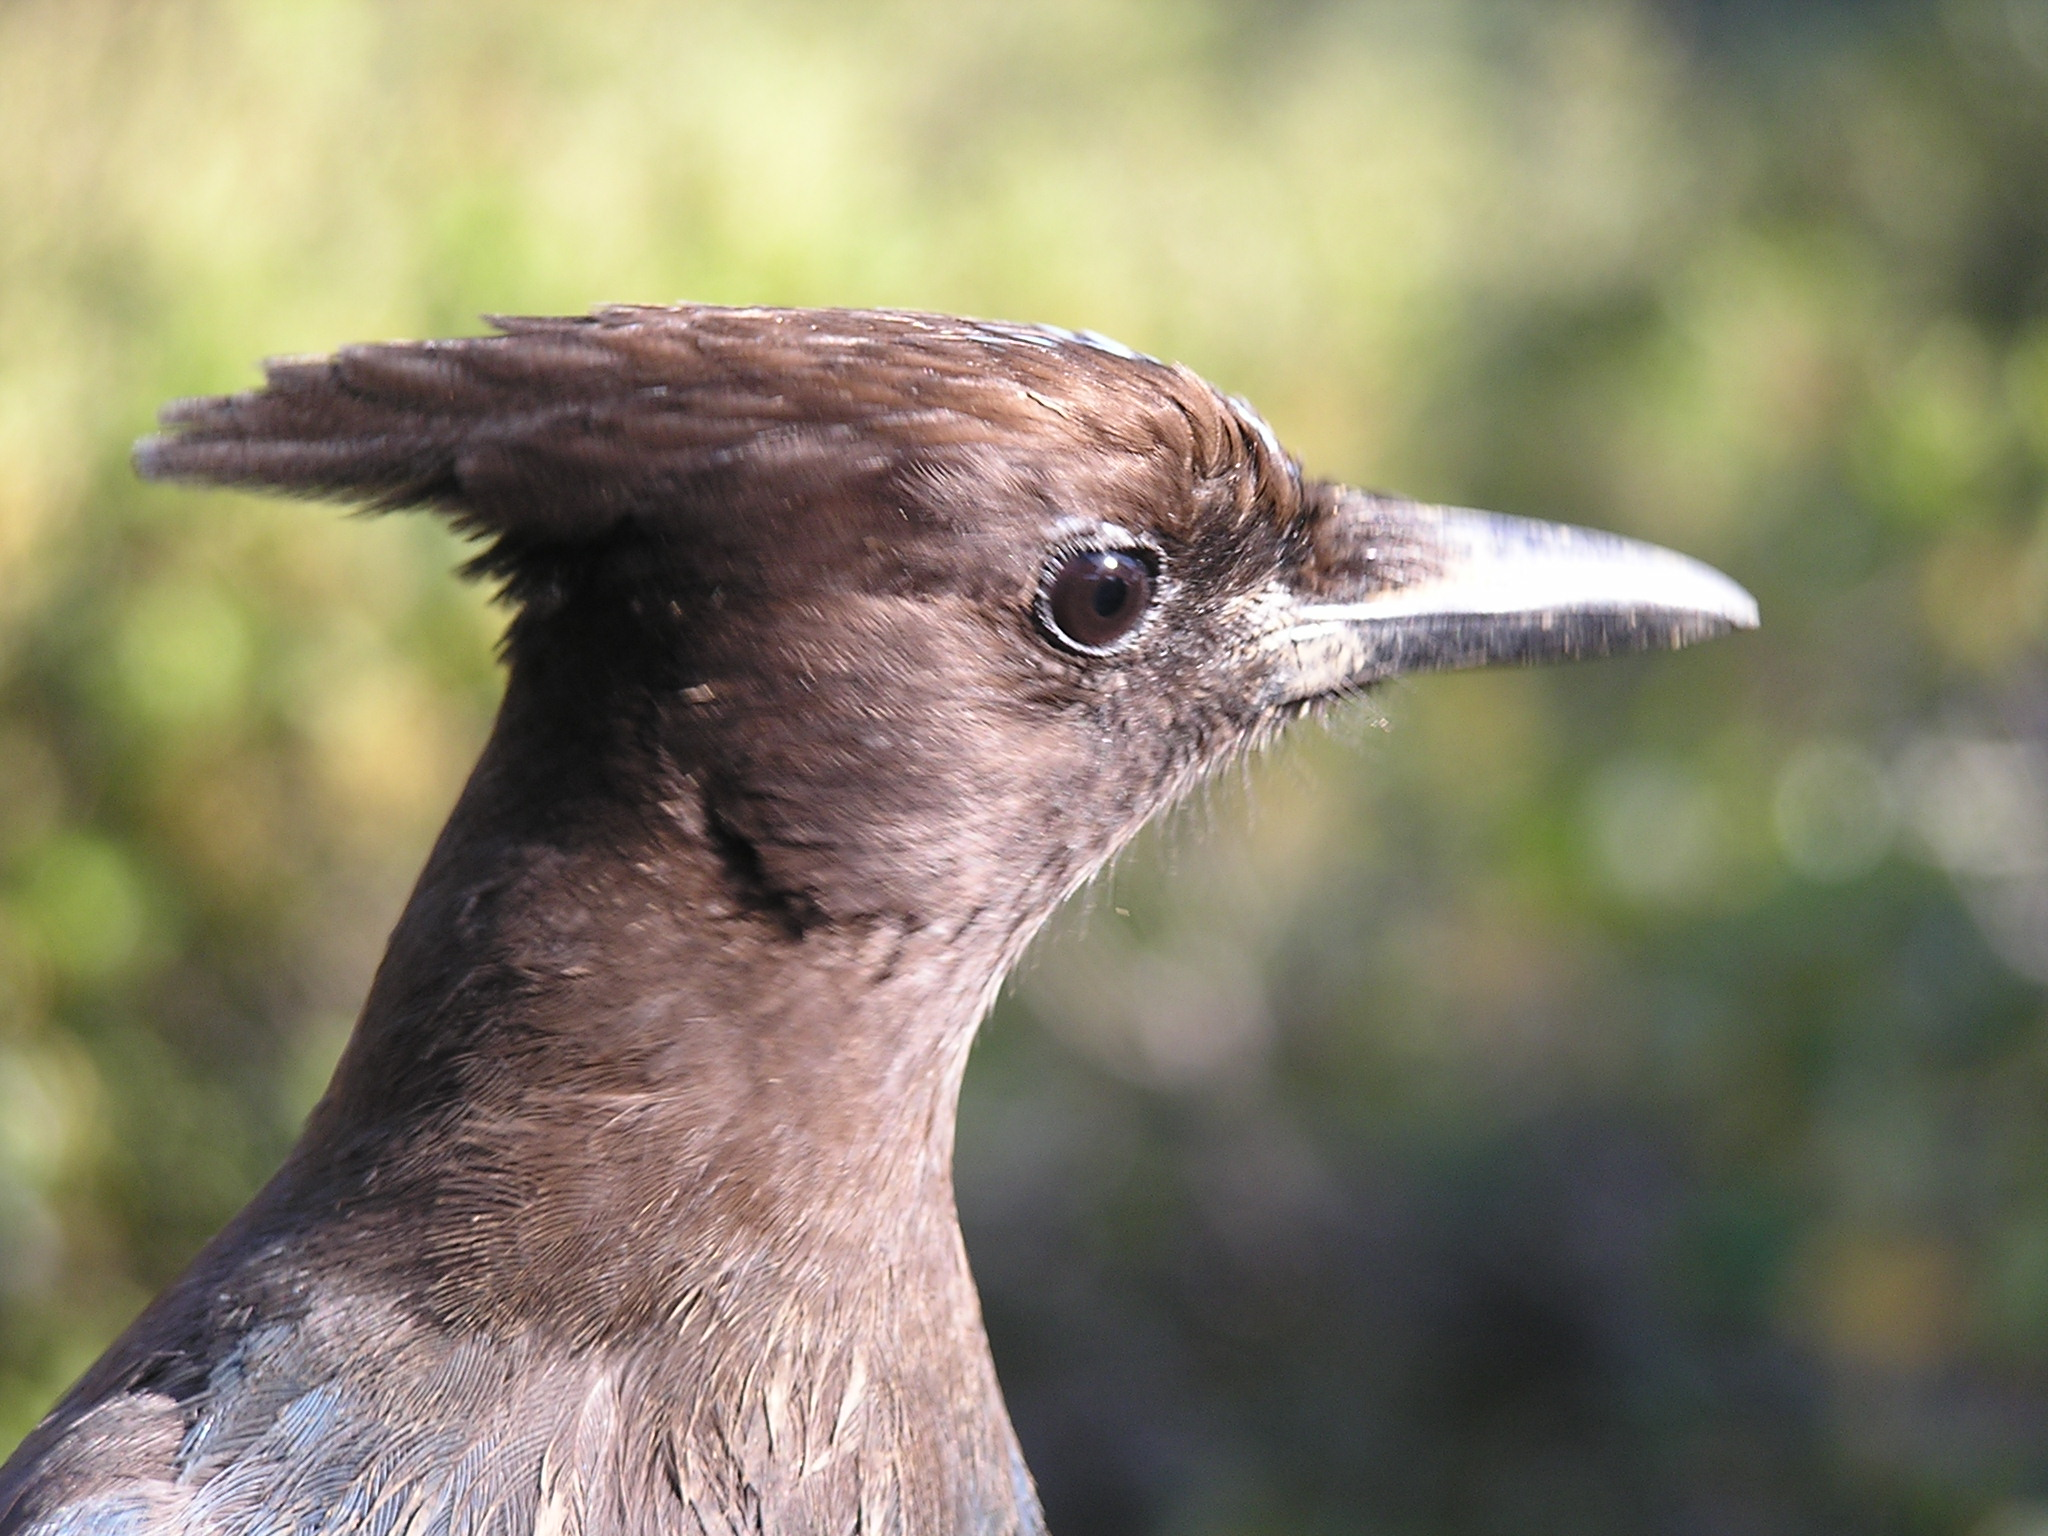 Closeup profile of head of brown bird, with bokeh background.